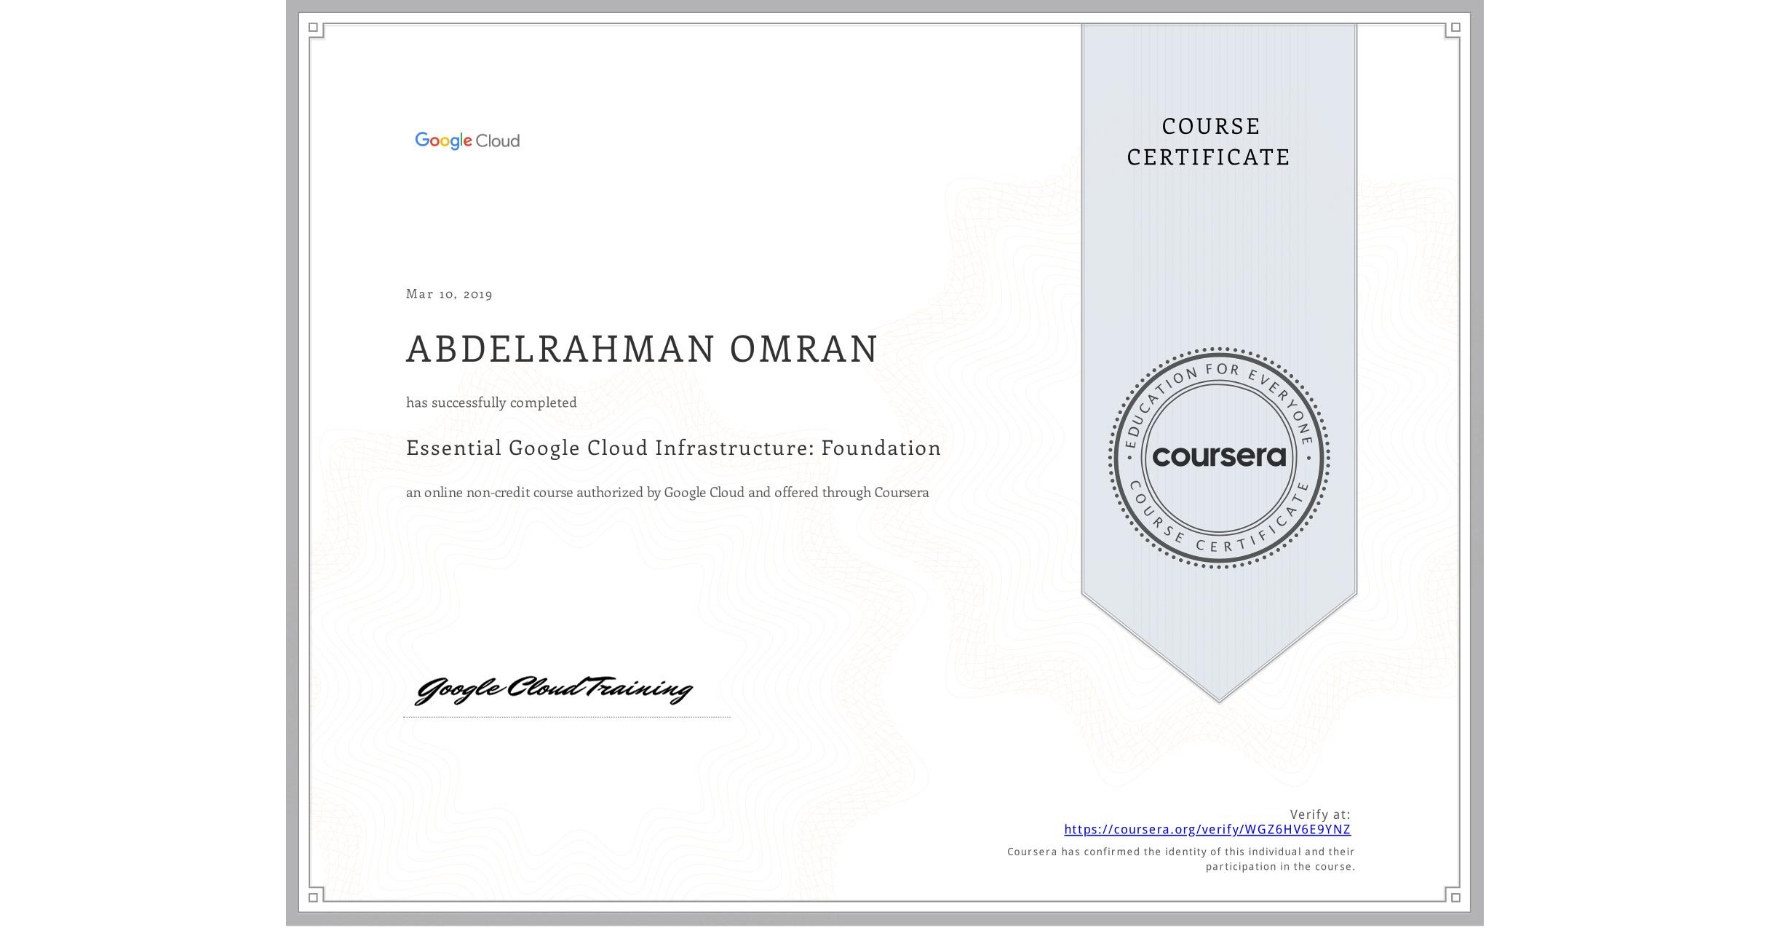 View certificate for ABDELRAHMAN OMRAN, Essential Google Cloud Infrastructure: Foundation, an online non-credit course authorized by Google Cloud and offered through Coursera